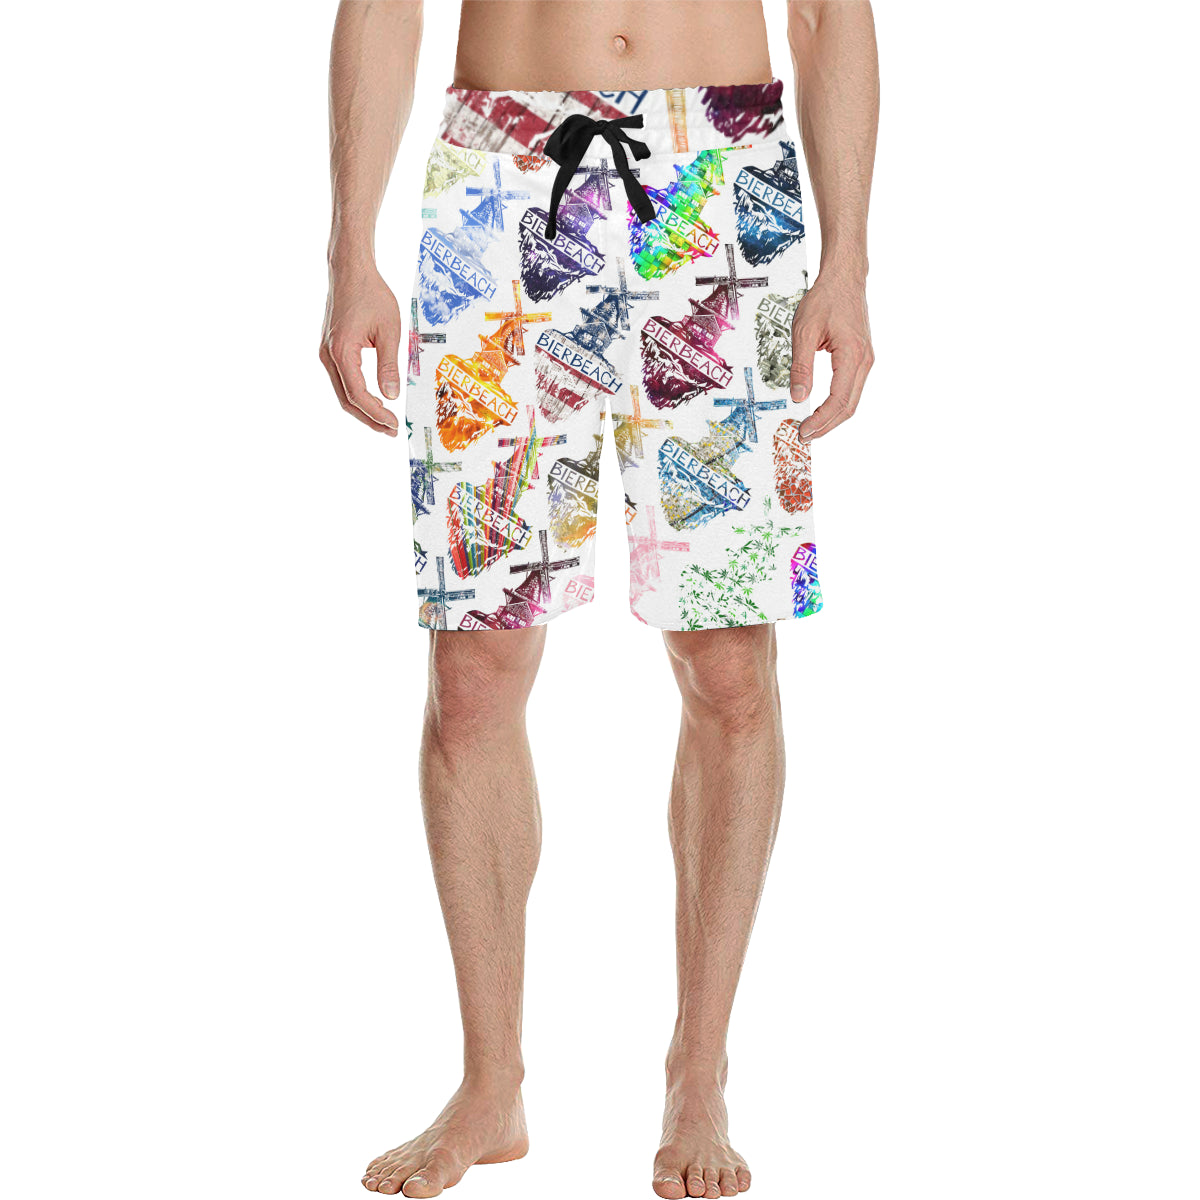 Bierbeach Logo All Over White Trunks